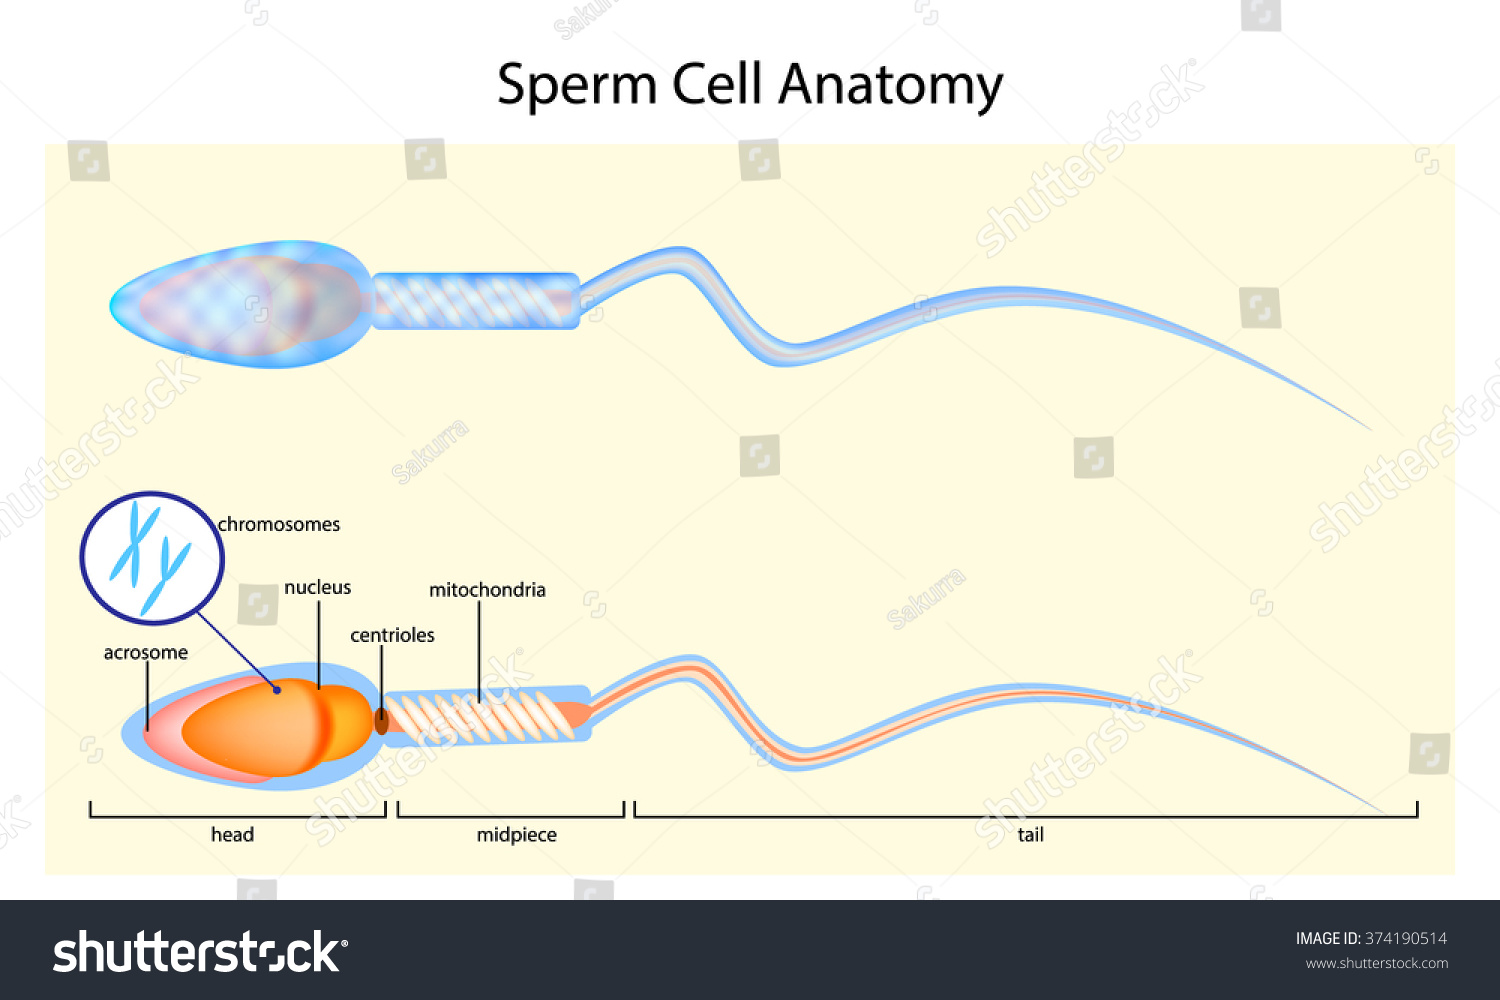 Human Sperm Cell Anatomy Illustration Stock Vector 374190514 ...